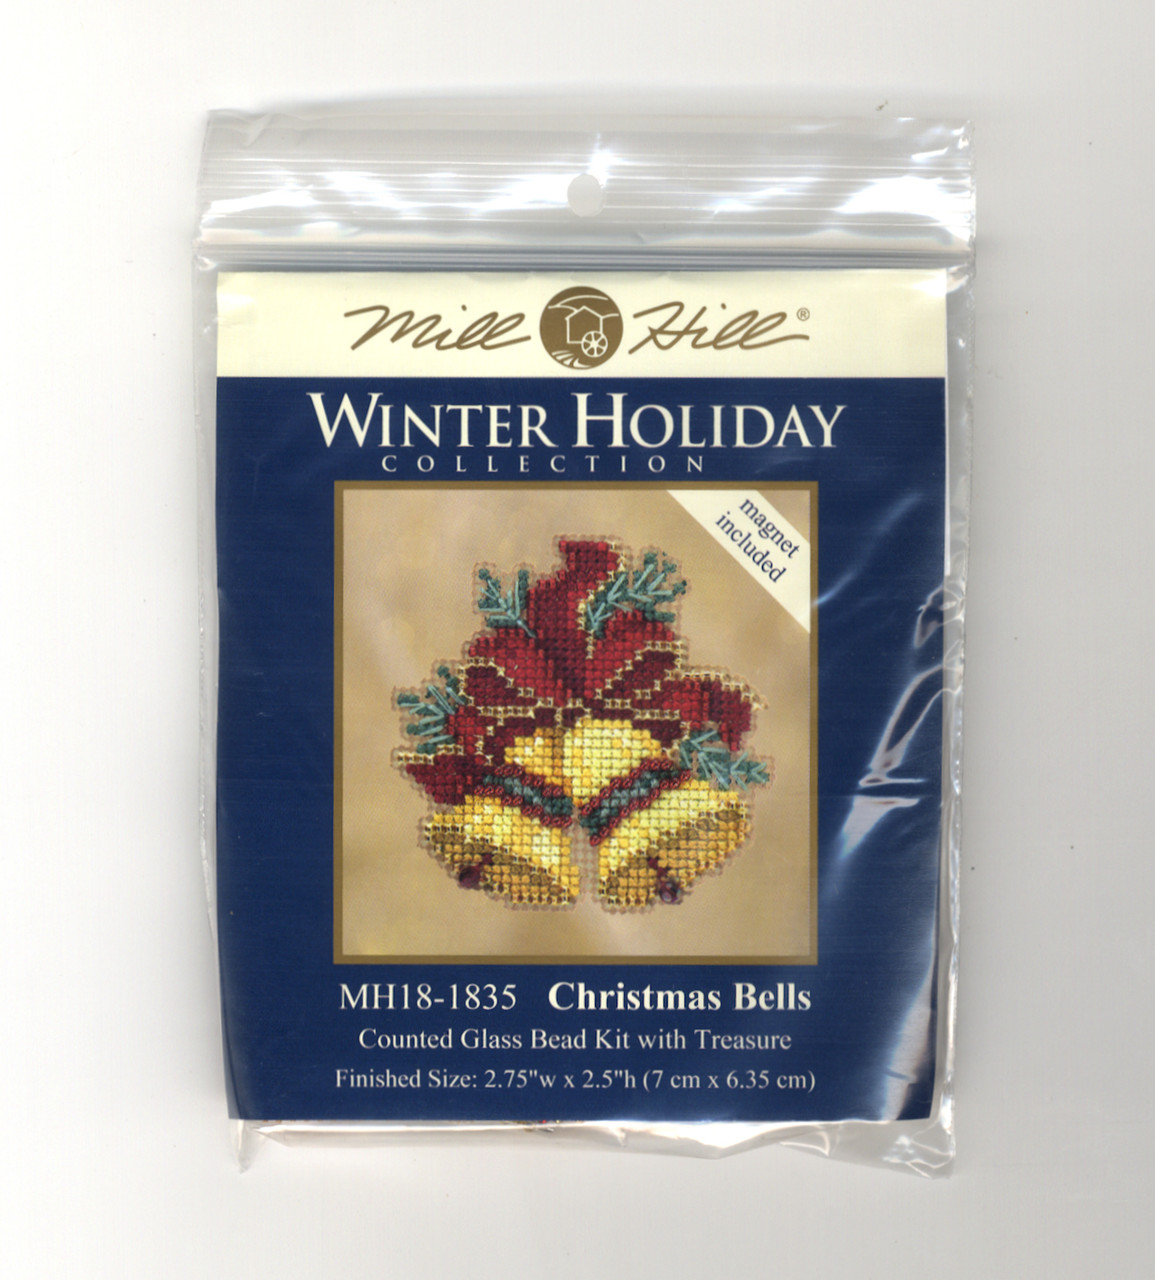 Mill Hill 2018 Winter Holiday Collection - Christmas Bells Ornament